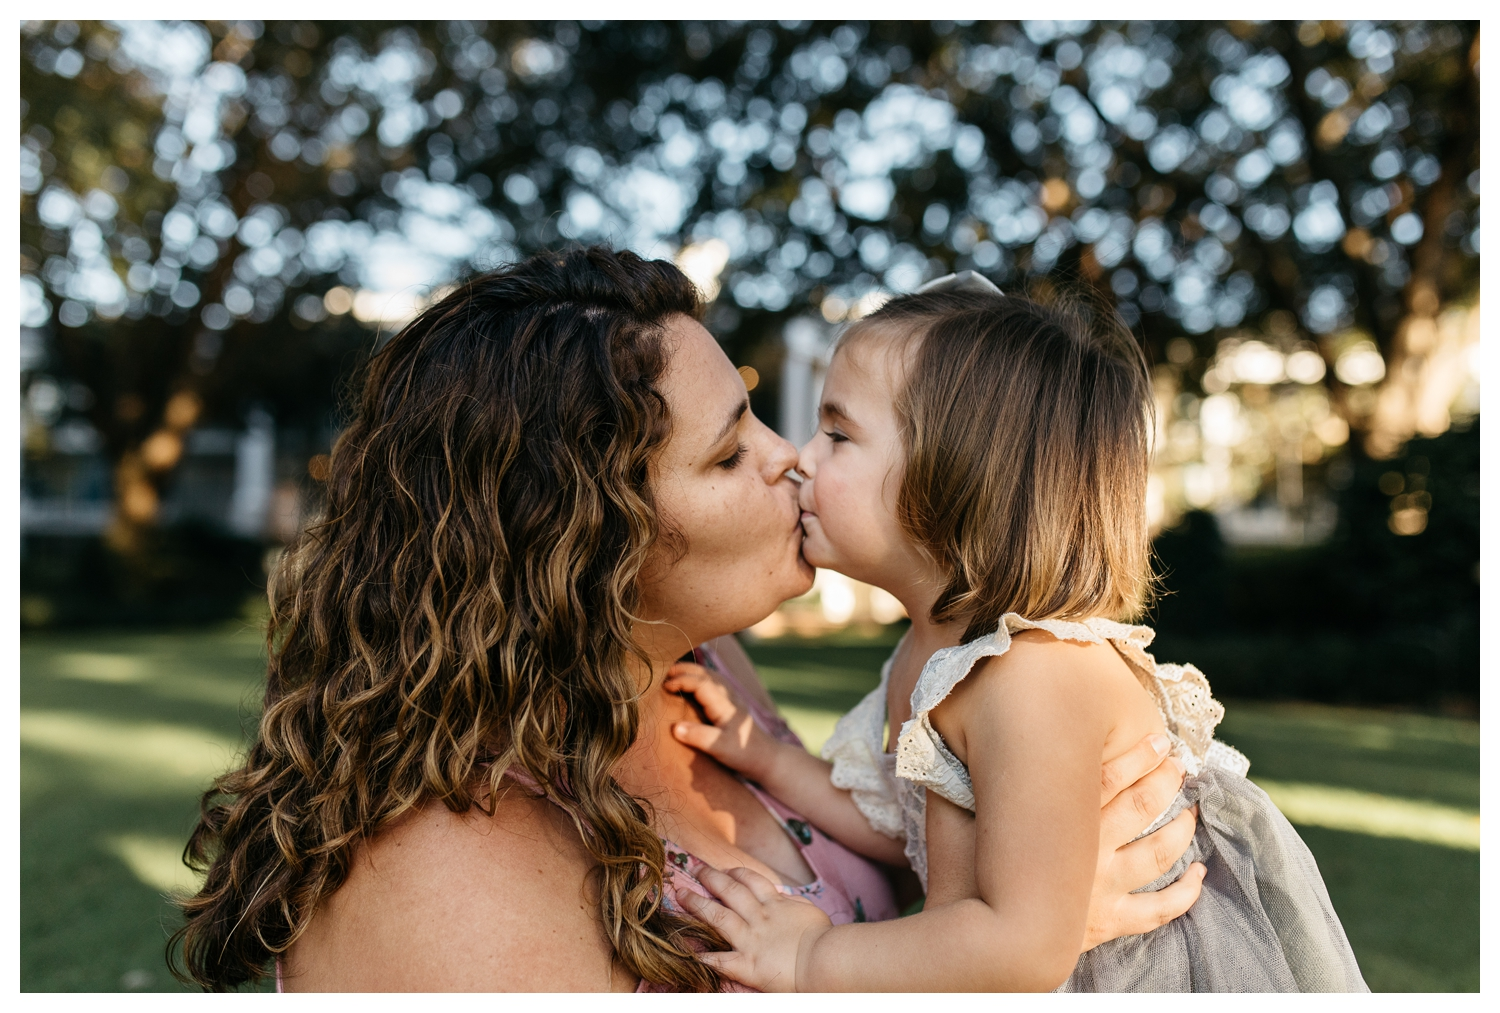 Mom and Daughter Share a Kiss Orlando Family Session.jpg